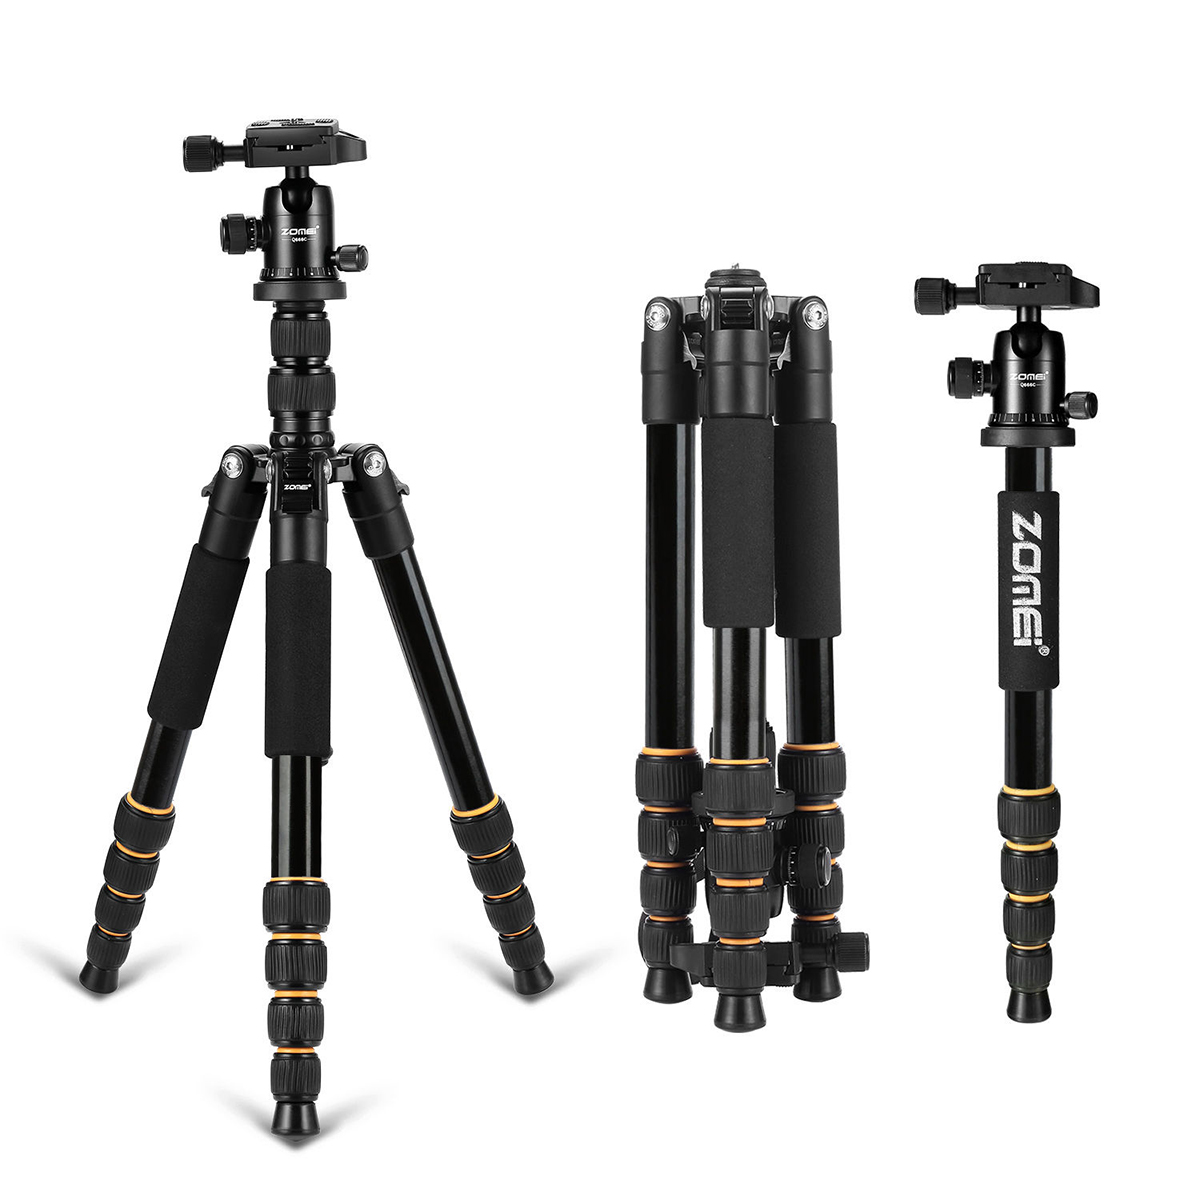 ZOMEI Q666 lightweight Portable Professional Travel Camera Tripod Monopod aluminum Ball Head compact for digital SLR DSLR camera zomei q666 professional tripod monopod with ball head compact travel tripods portable camera stand for slr dslr digital camera